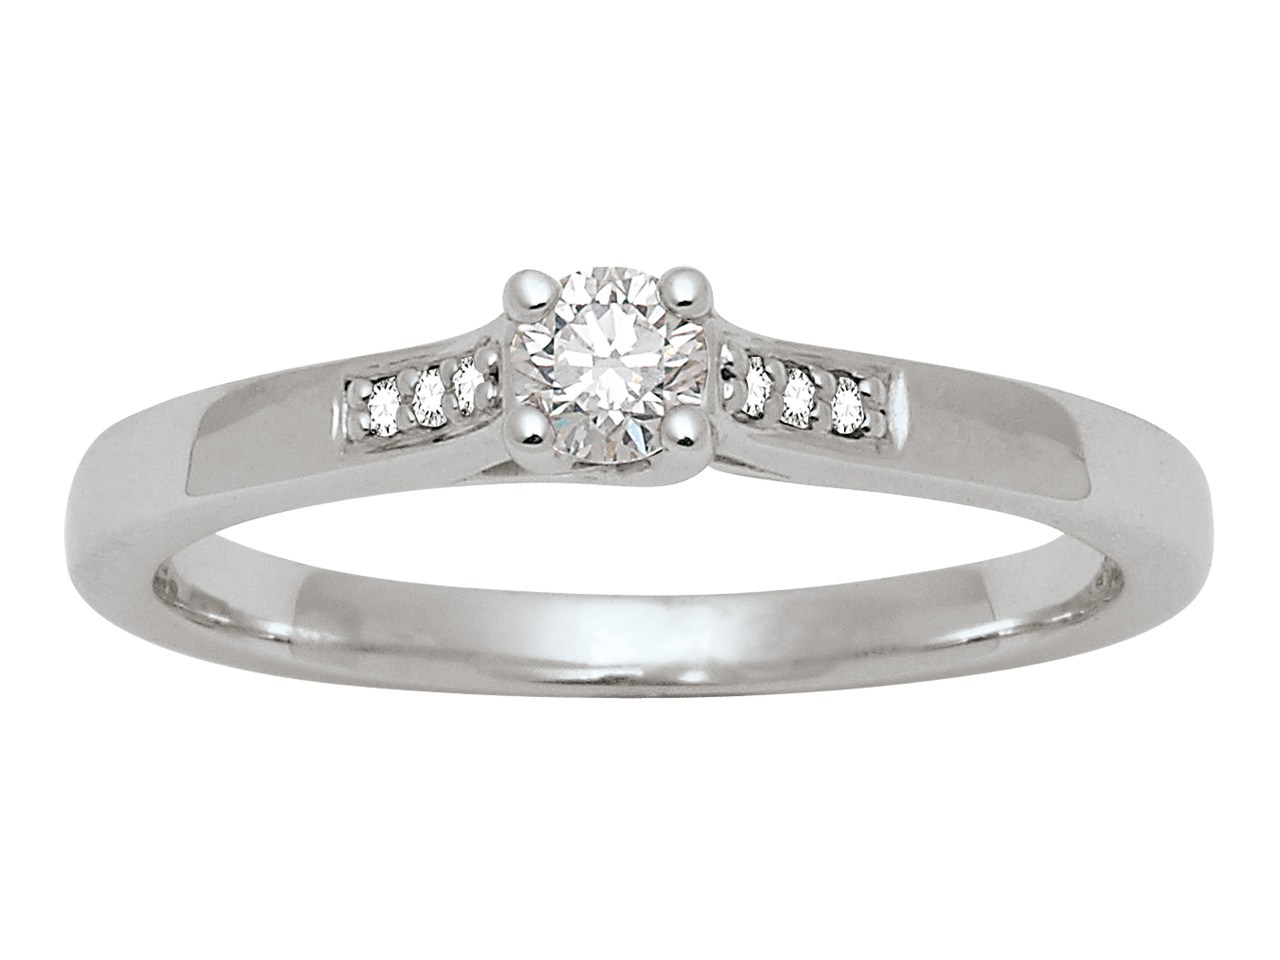 Solitaire accompagné, Or gris 18 k, Dts 0,18 ct, doigt 54